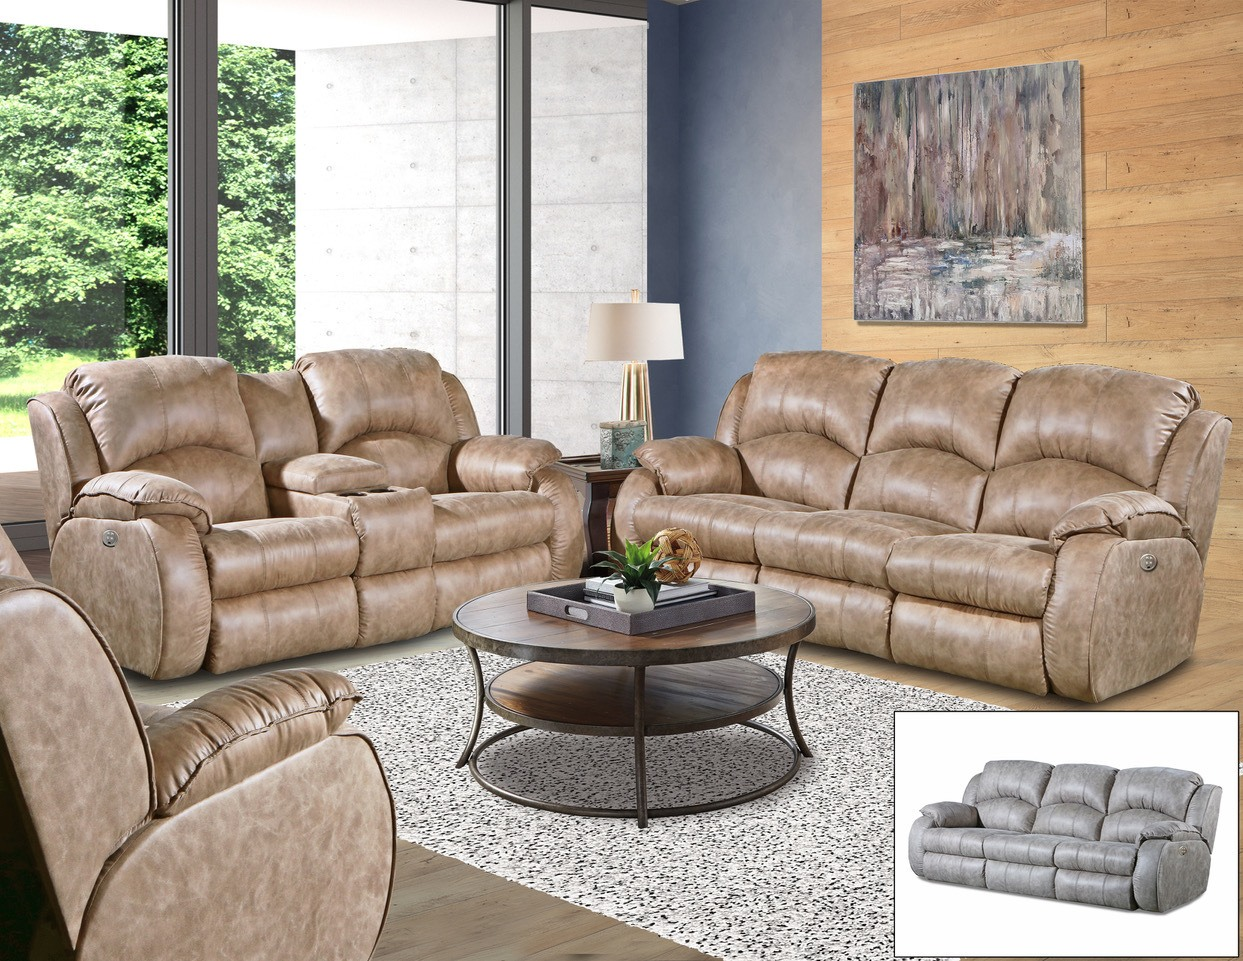 Cagney Sofa or Loveseat Image